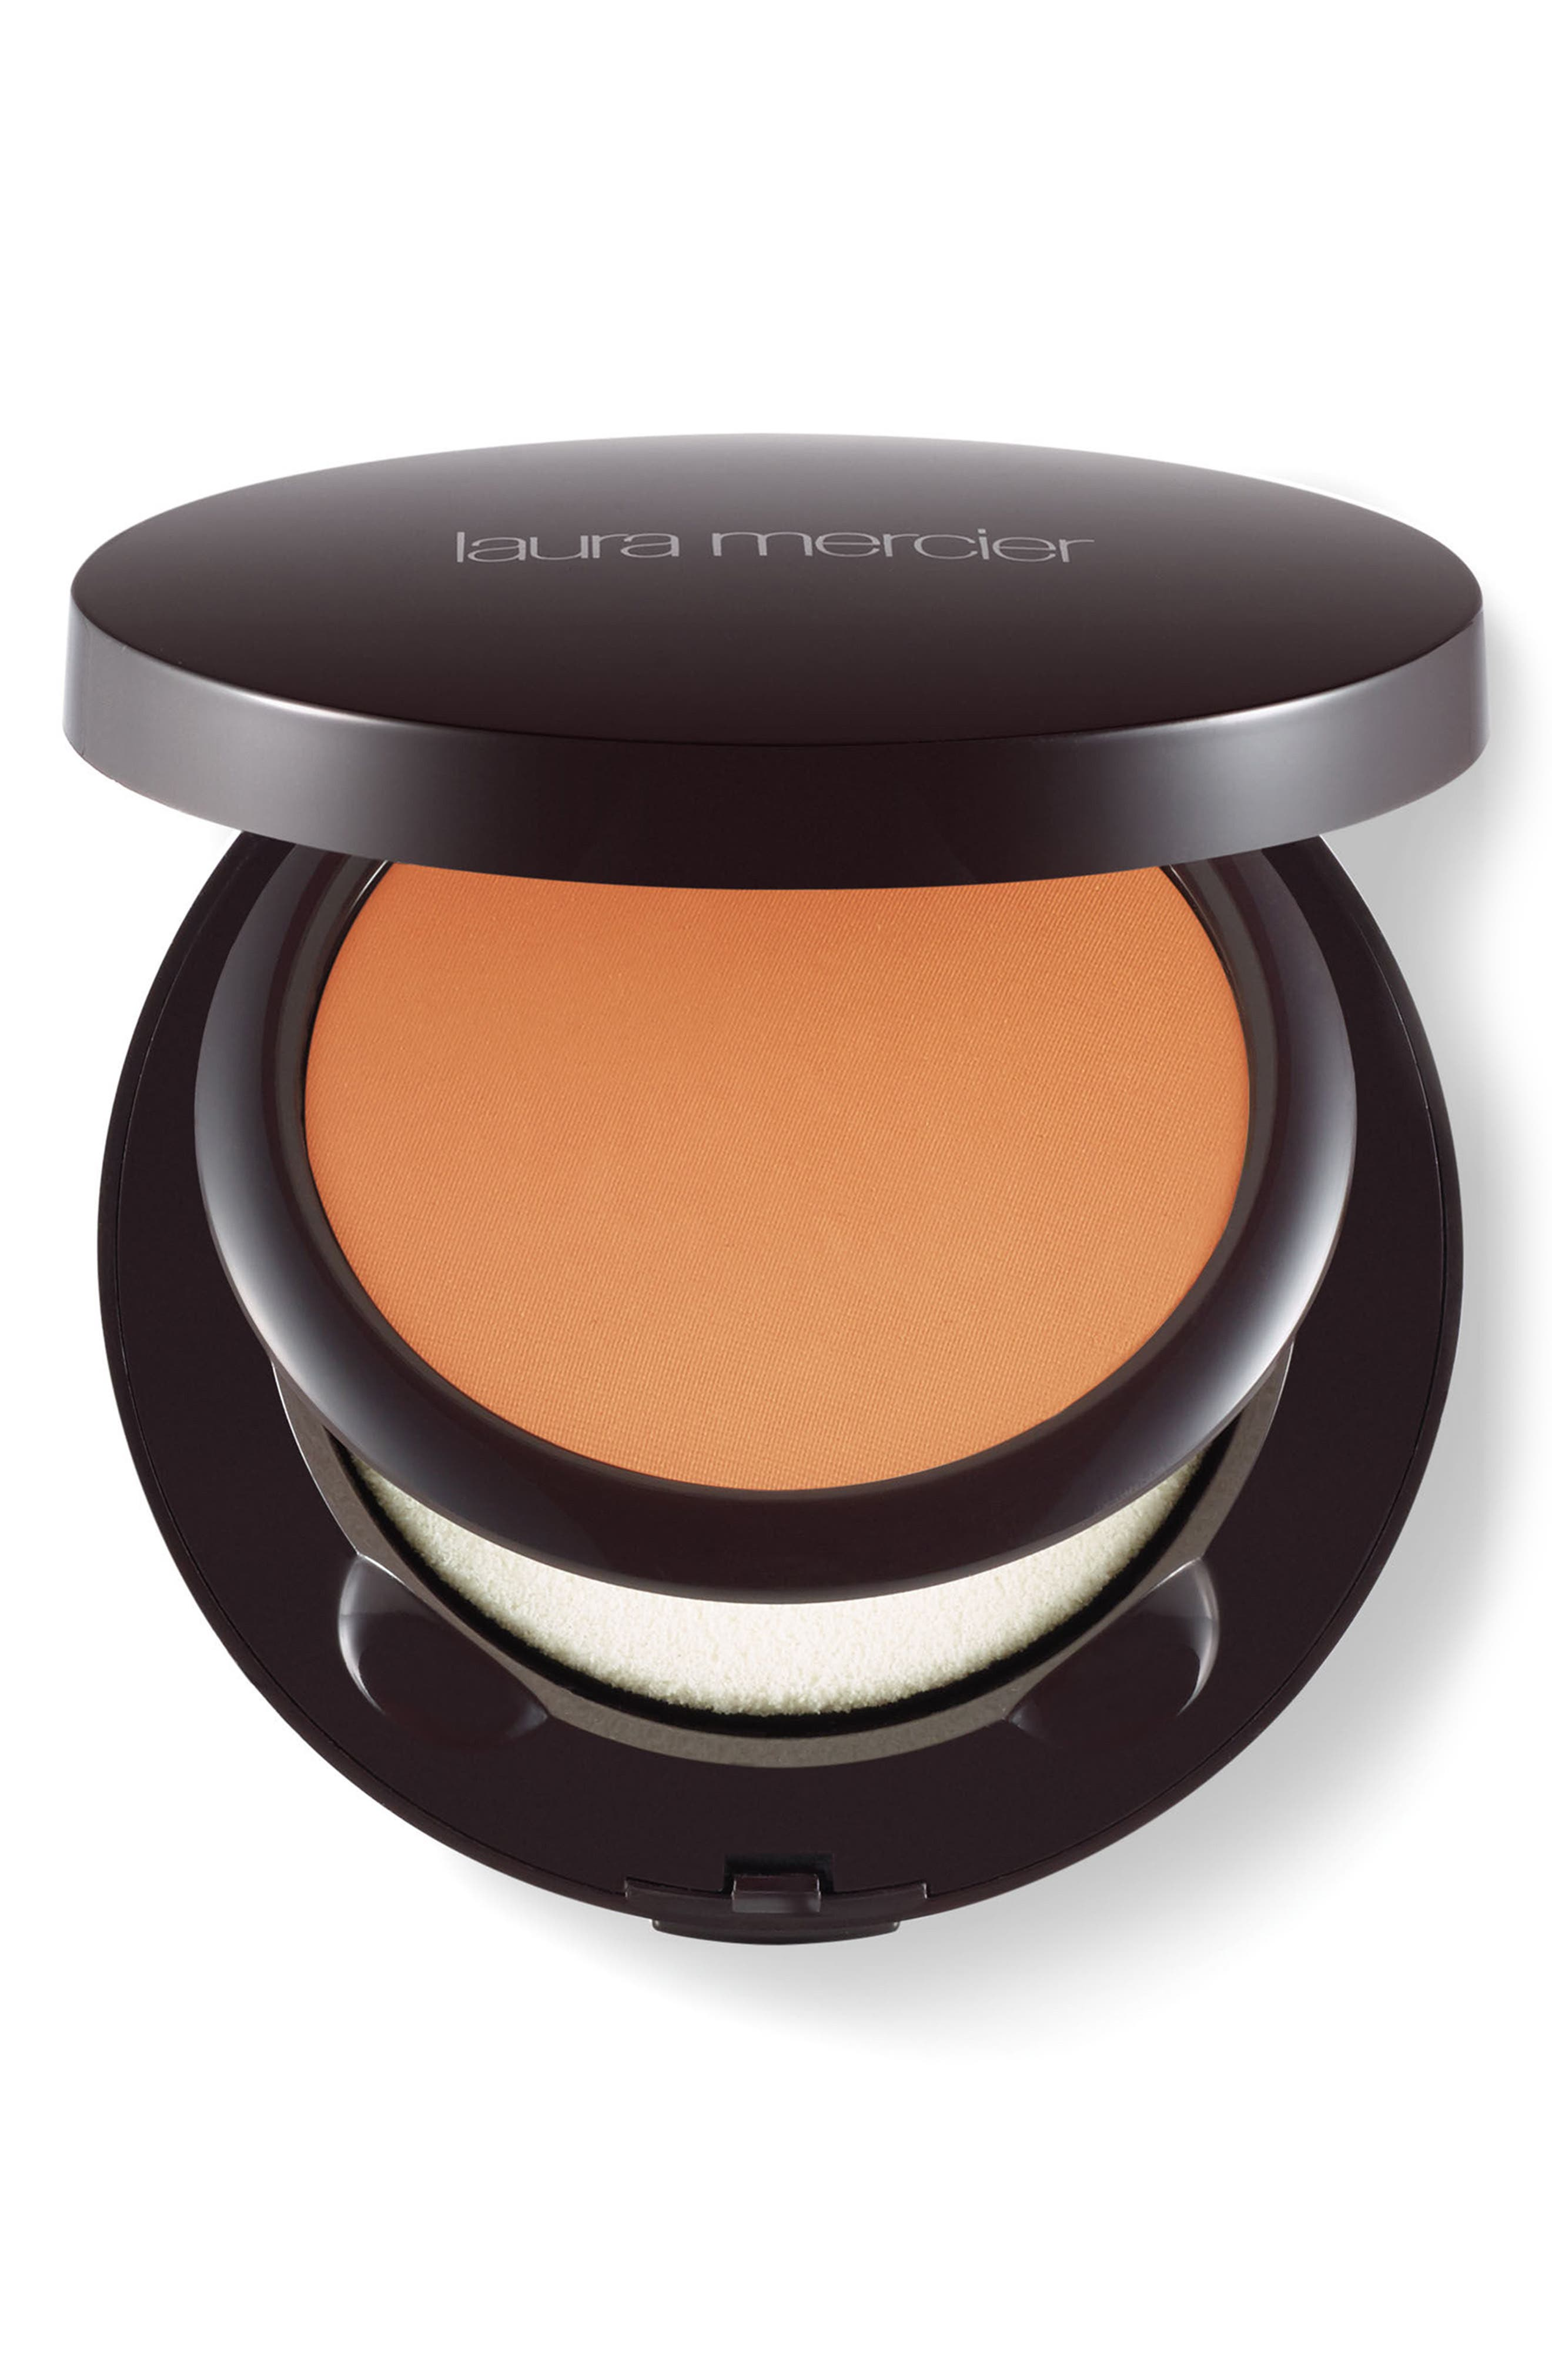 Laura Mercier Smooth Finish Foundation Powder